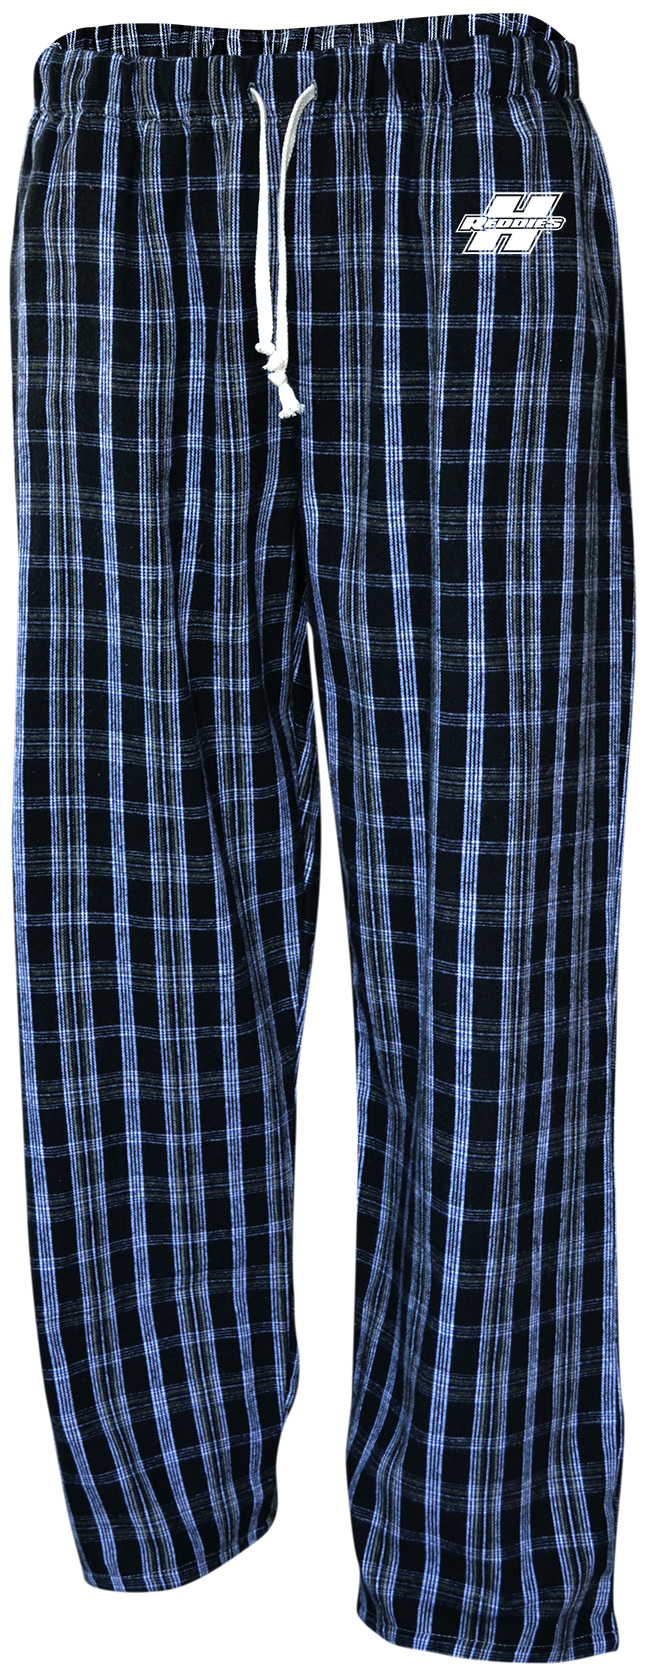 Henderson Reddies Flannel Pants